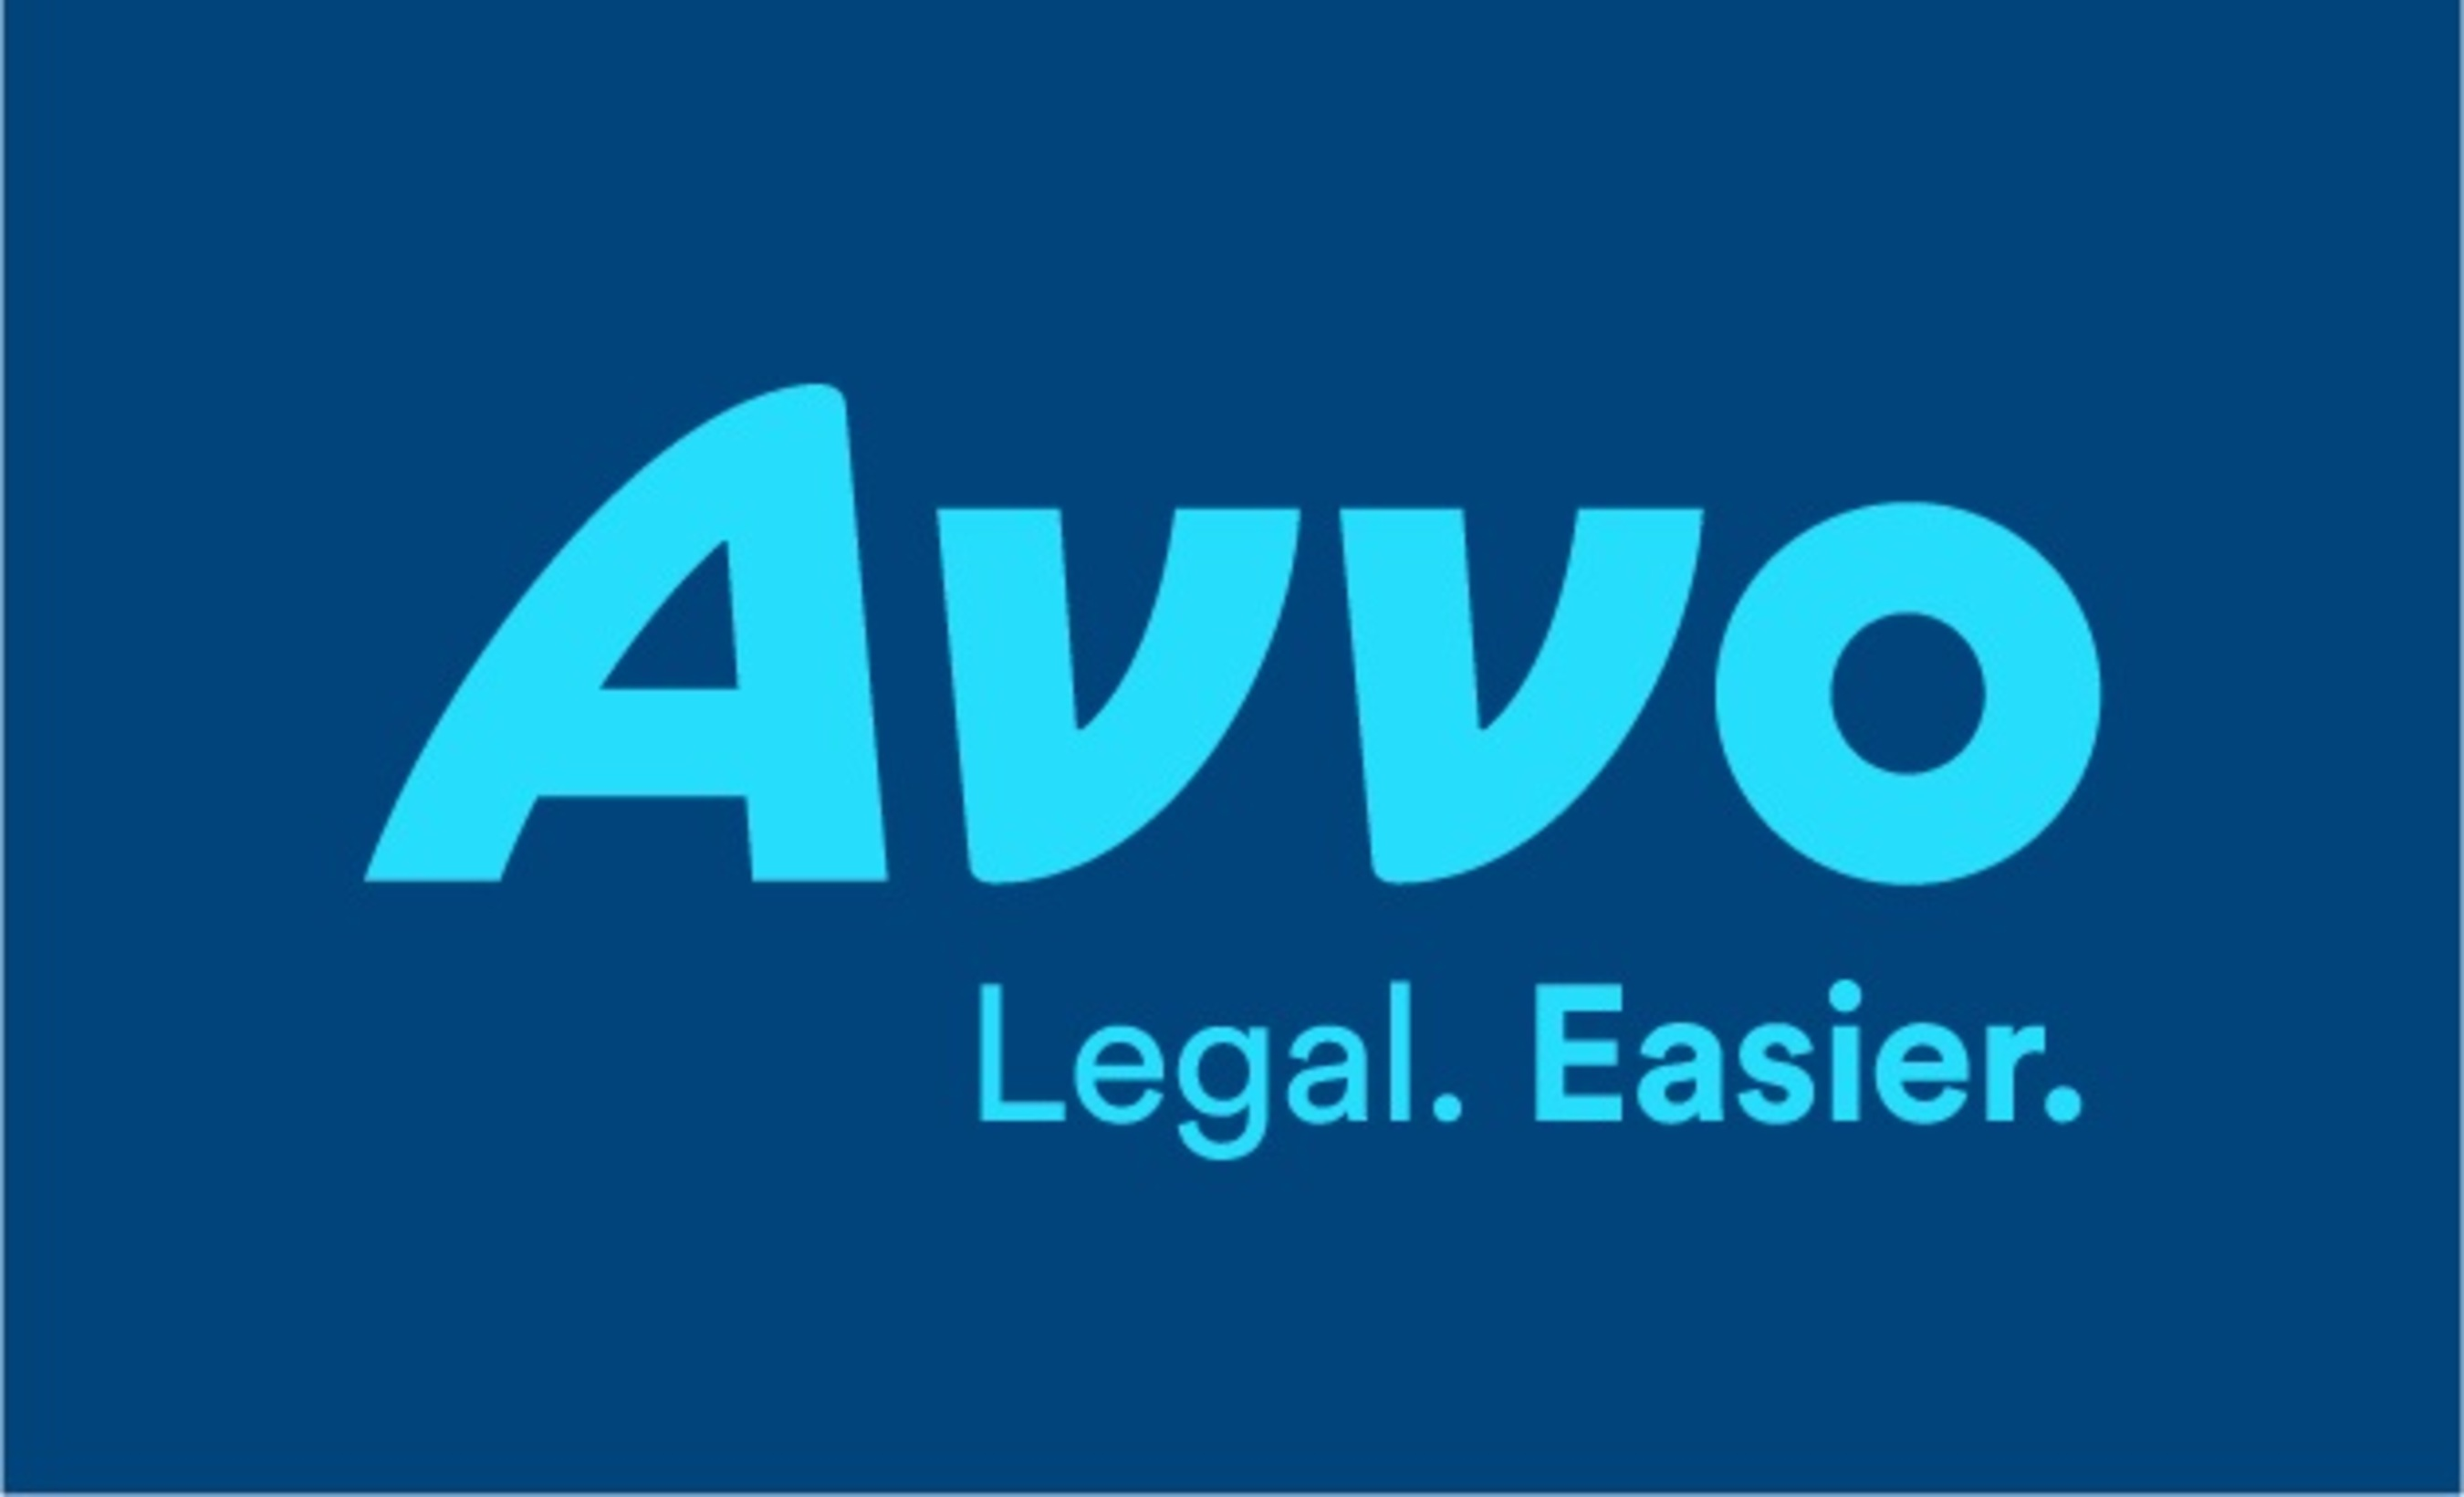 Avvo.com, the web's largest legal Q&A forum, directory and marketplace.